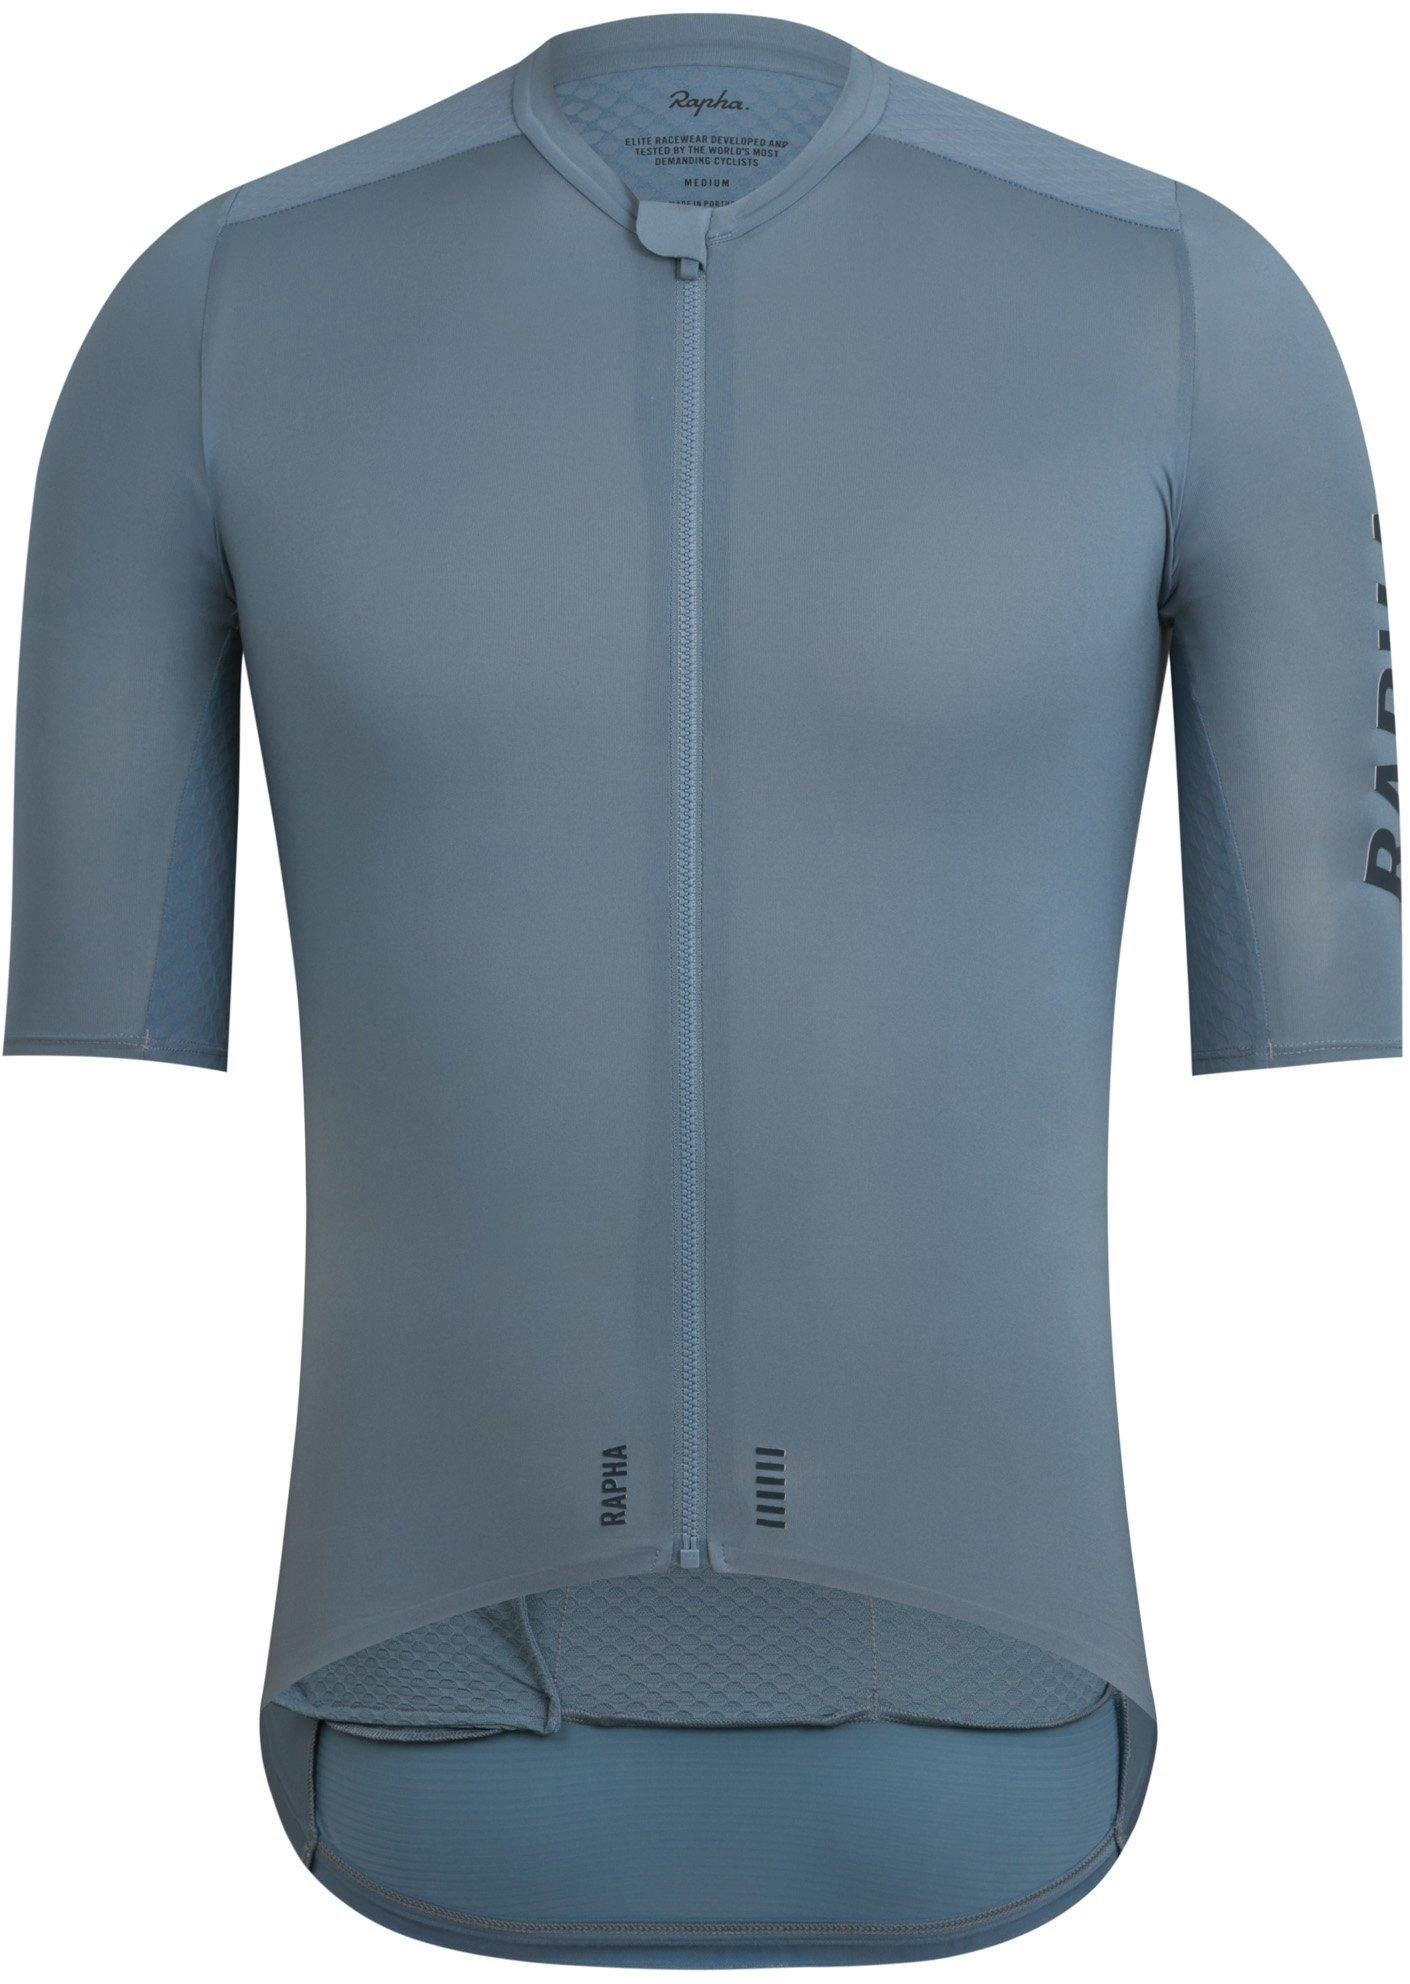 Details about  /Rapha Pro Team Aero Jersey Brown Size X Large Brand New With Tag